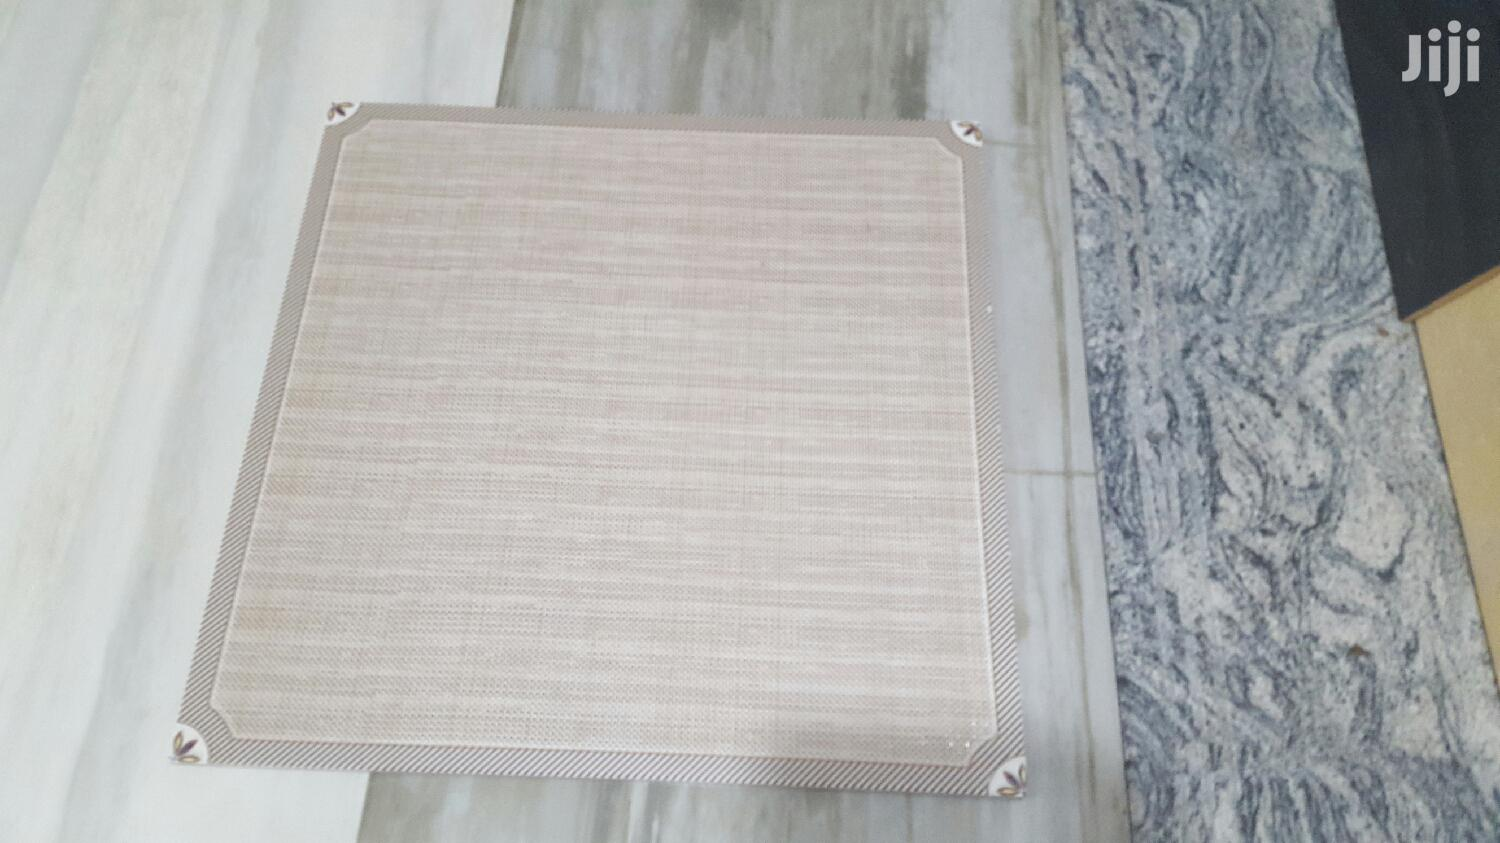 50x50 Tiles | Building Materials for sale in Odorkor, Greater Accra, Ghana